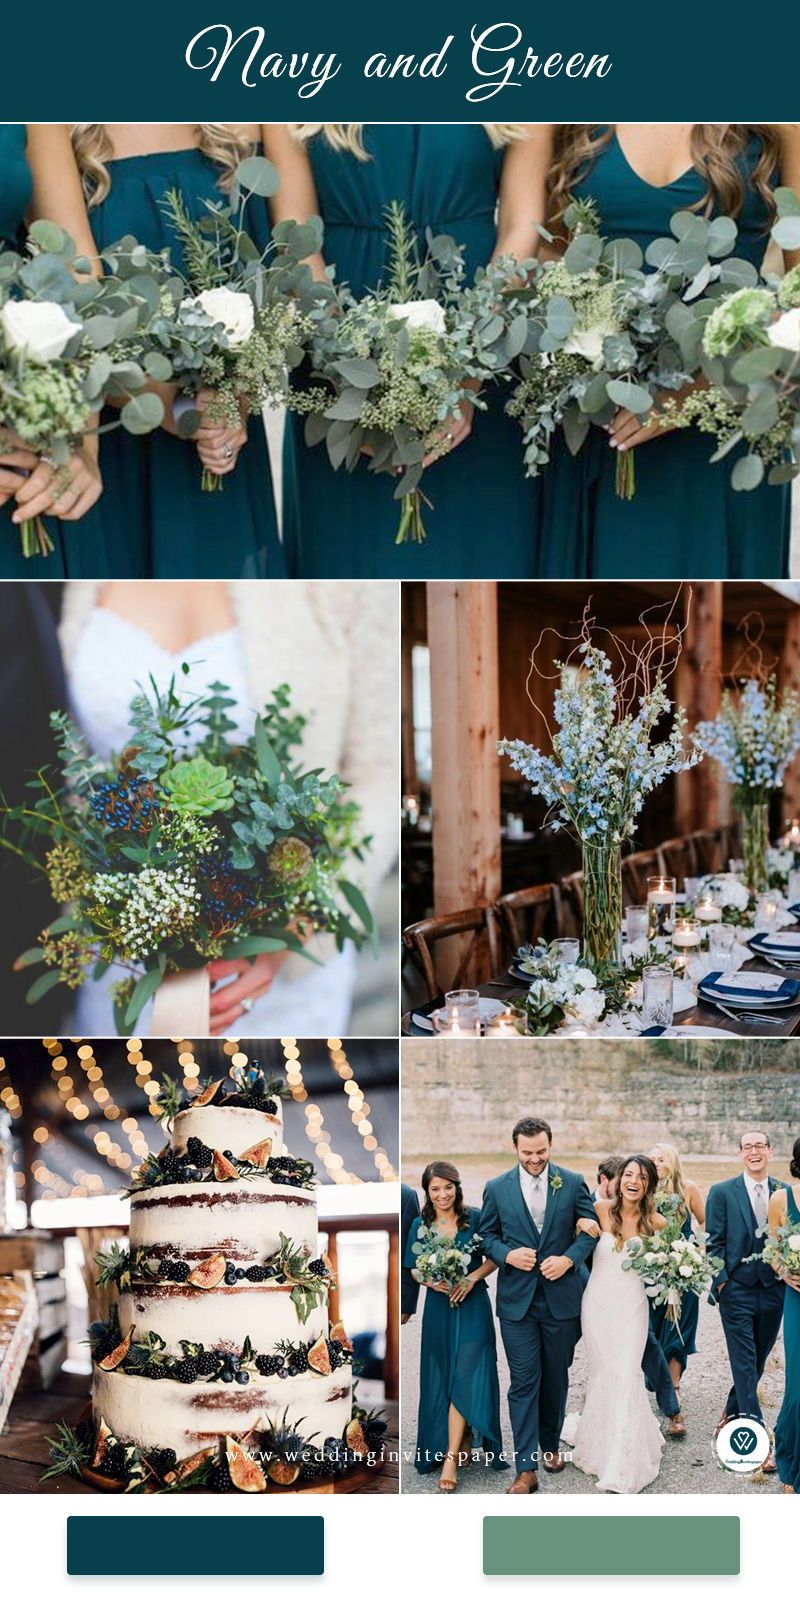 Top 8 Striking Navy Blue Wedding Color Palettes For 2019 Fall Navy Blue And Green Garden In 2020 Wedding Theme Colors Wedding Colors Blue Fall Wedding Color Palette